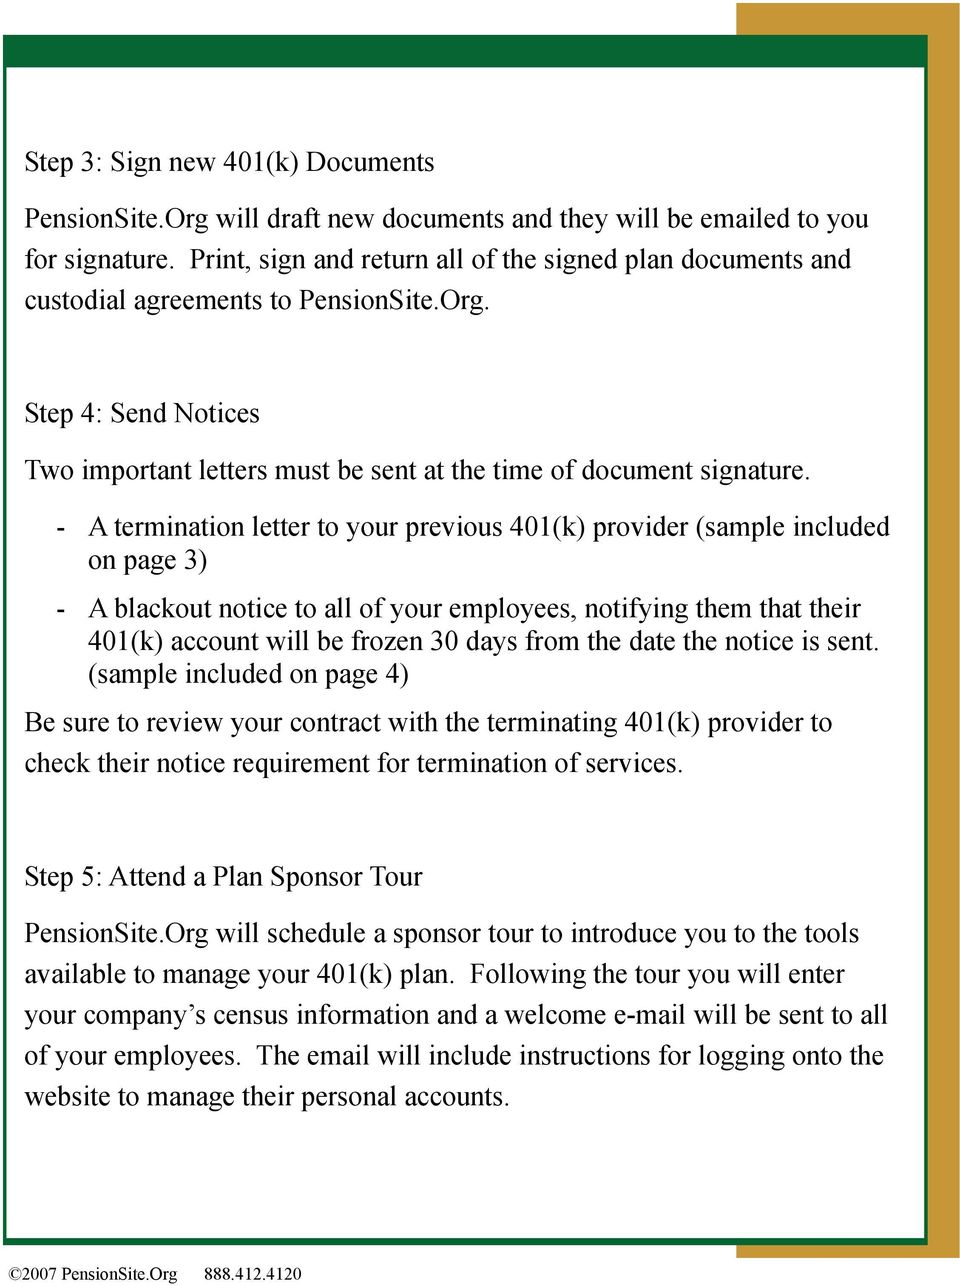 A termination letter to your previous 401(k) provider (sample included on